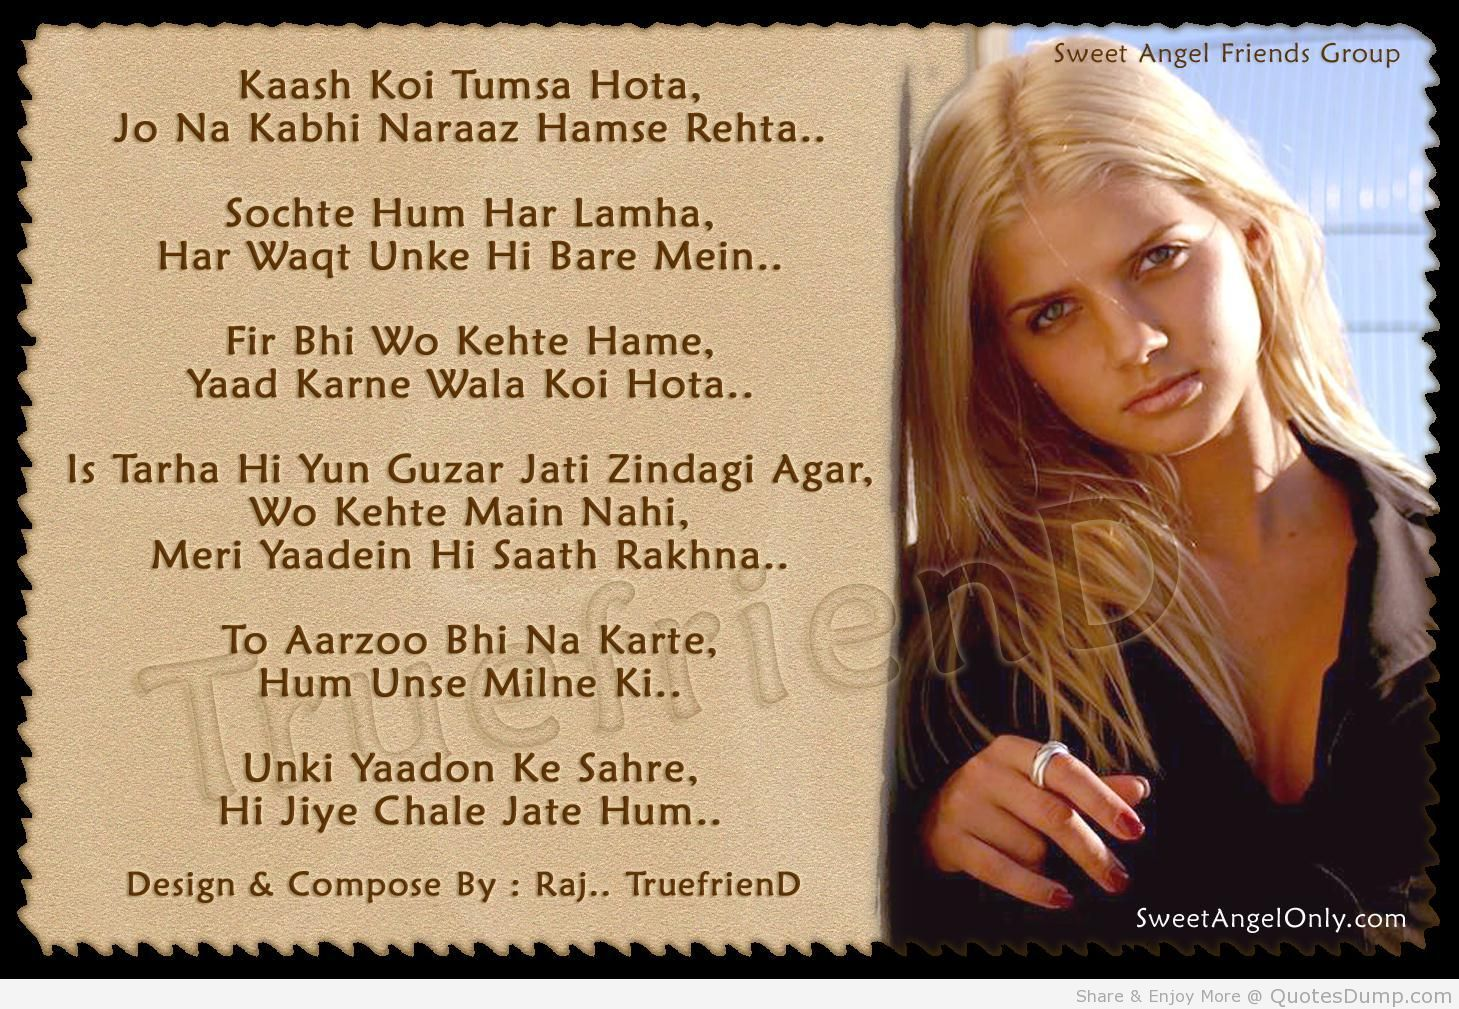 Funny Love Quotes In Hindi : 1150359389-funny-love-hindi-quote-sad-love-poems-hindi-quotesdump-cool ...